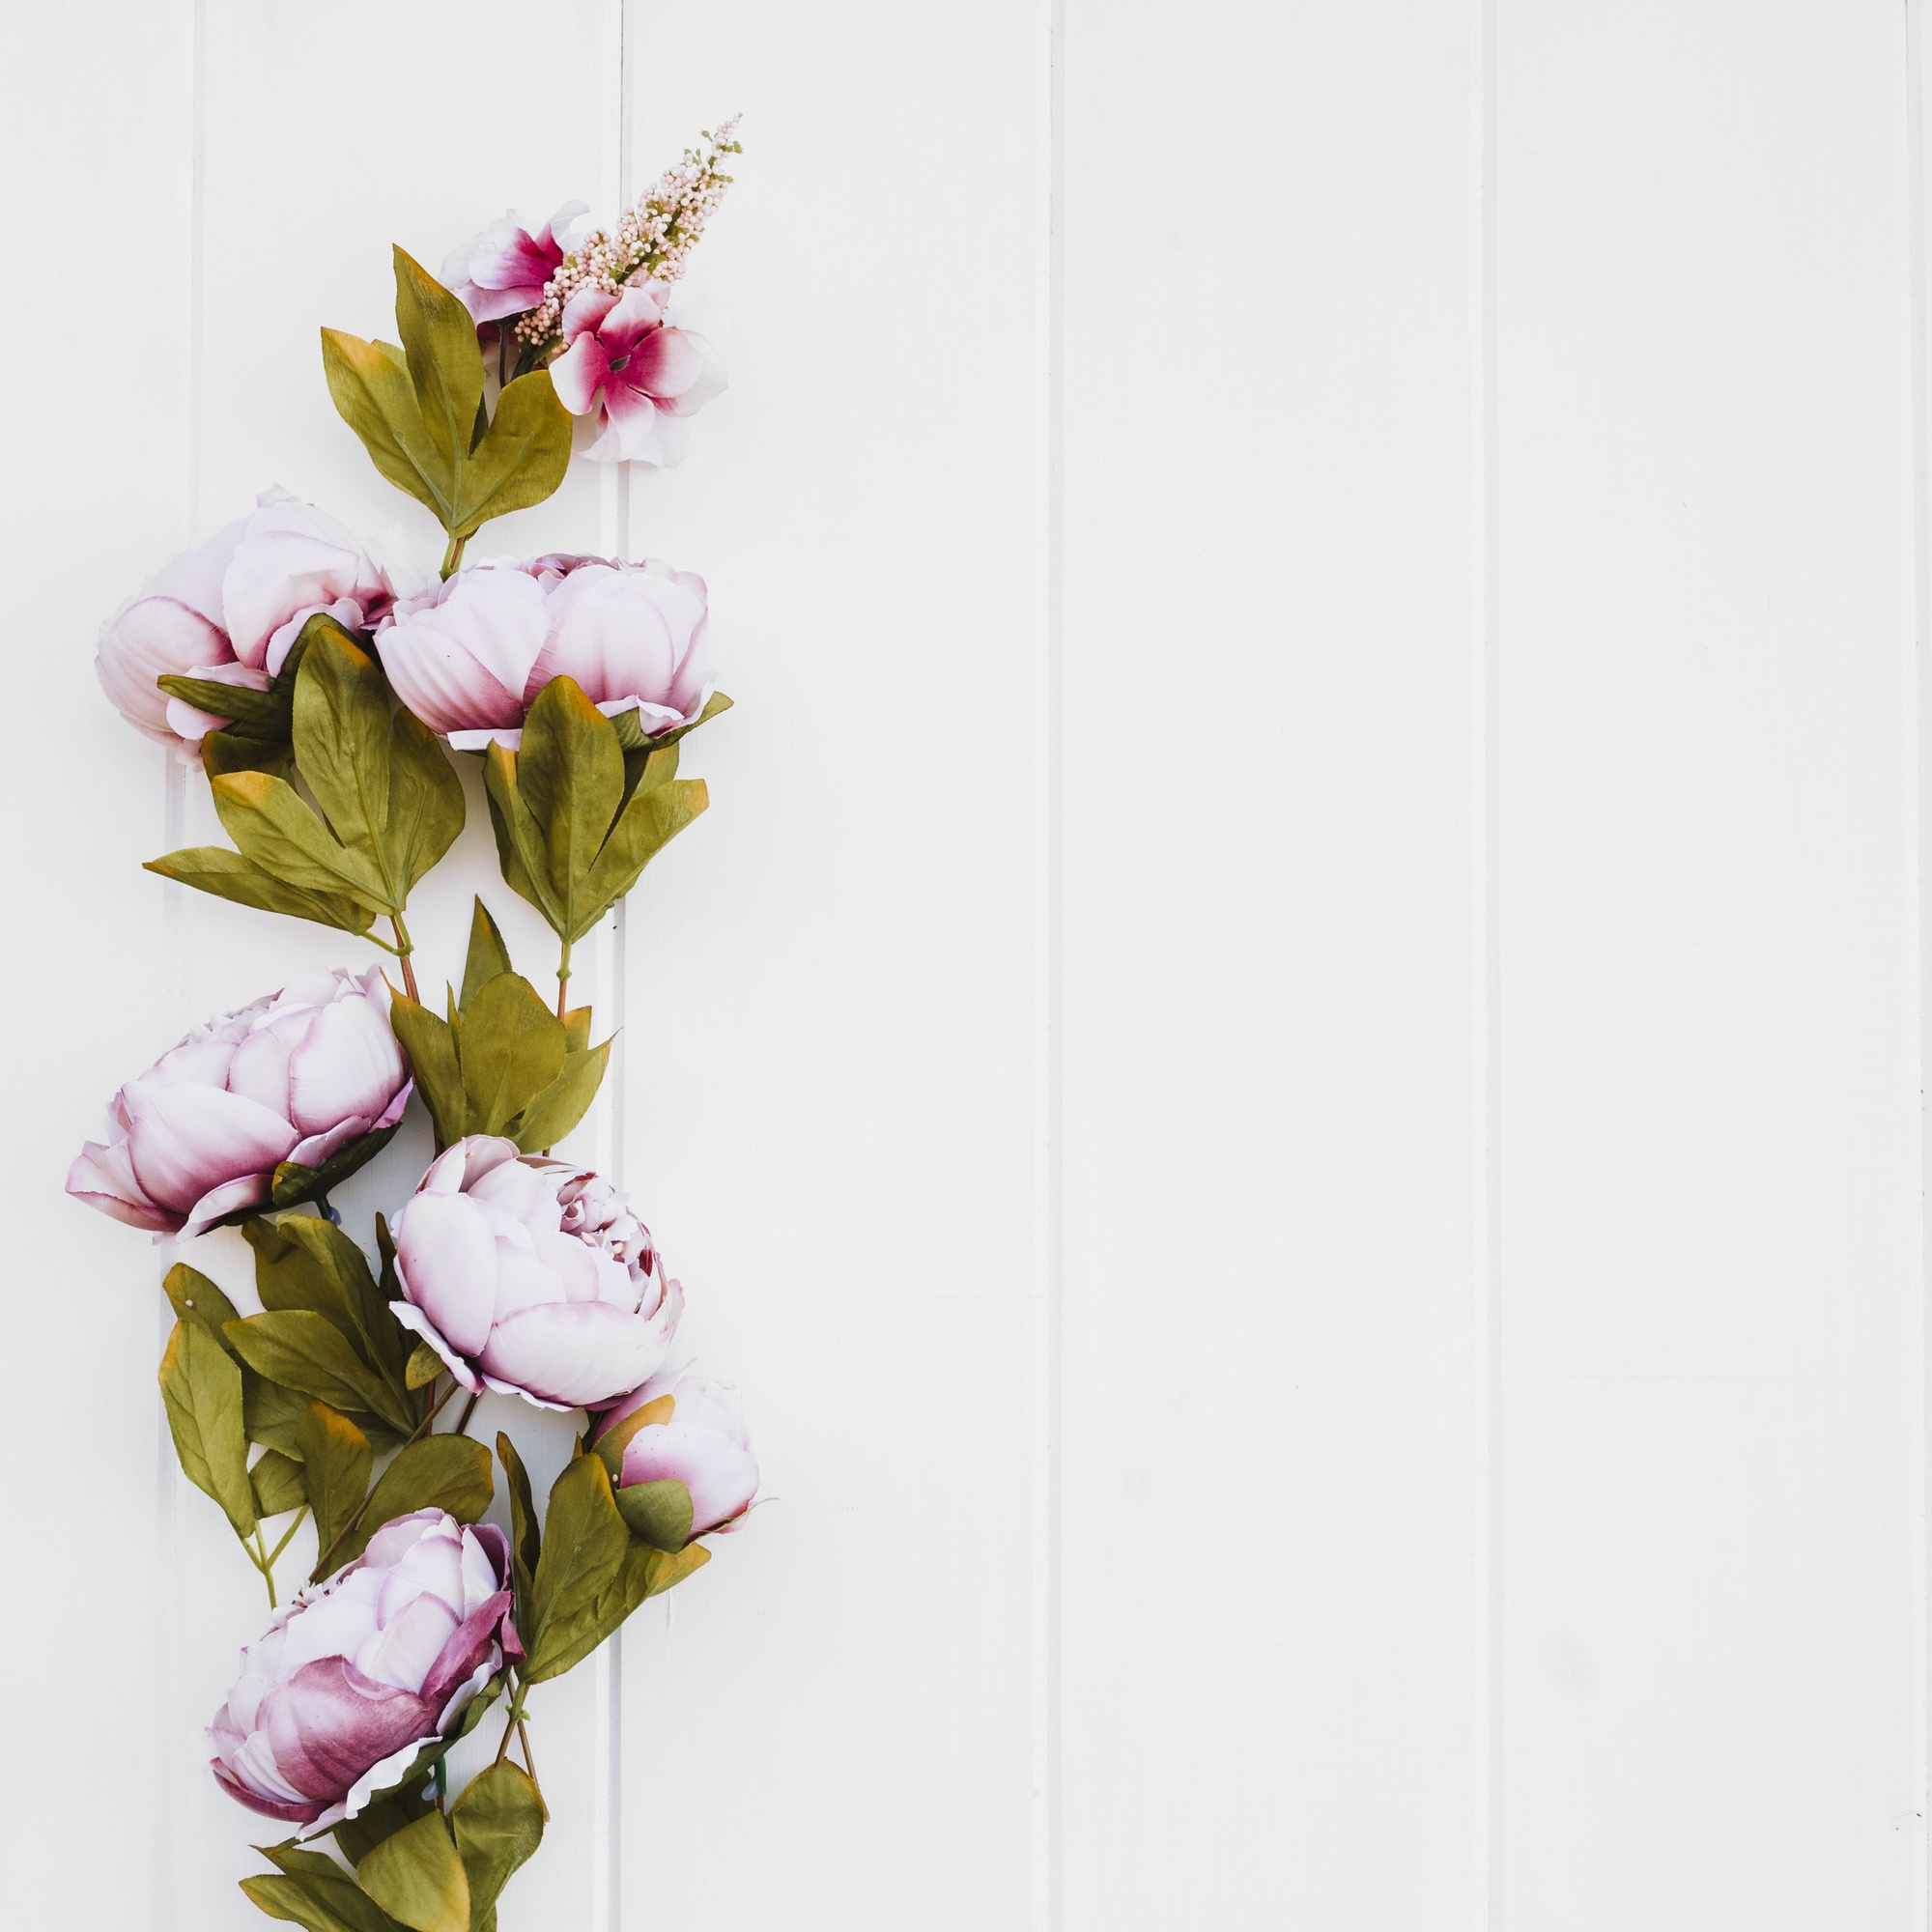 Beautiful roses on white background with space on the right